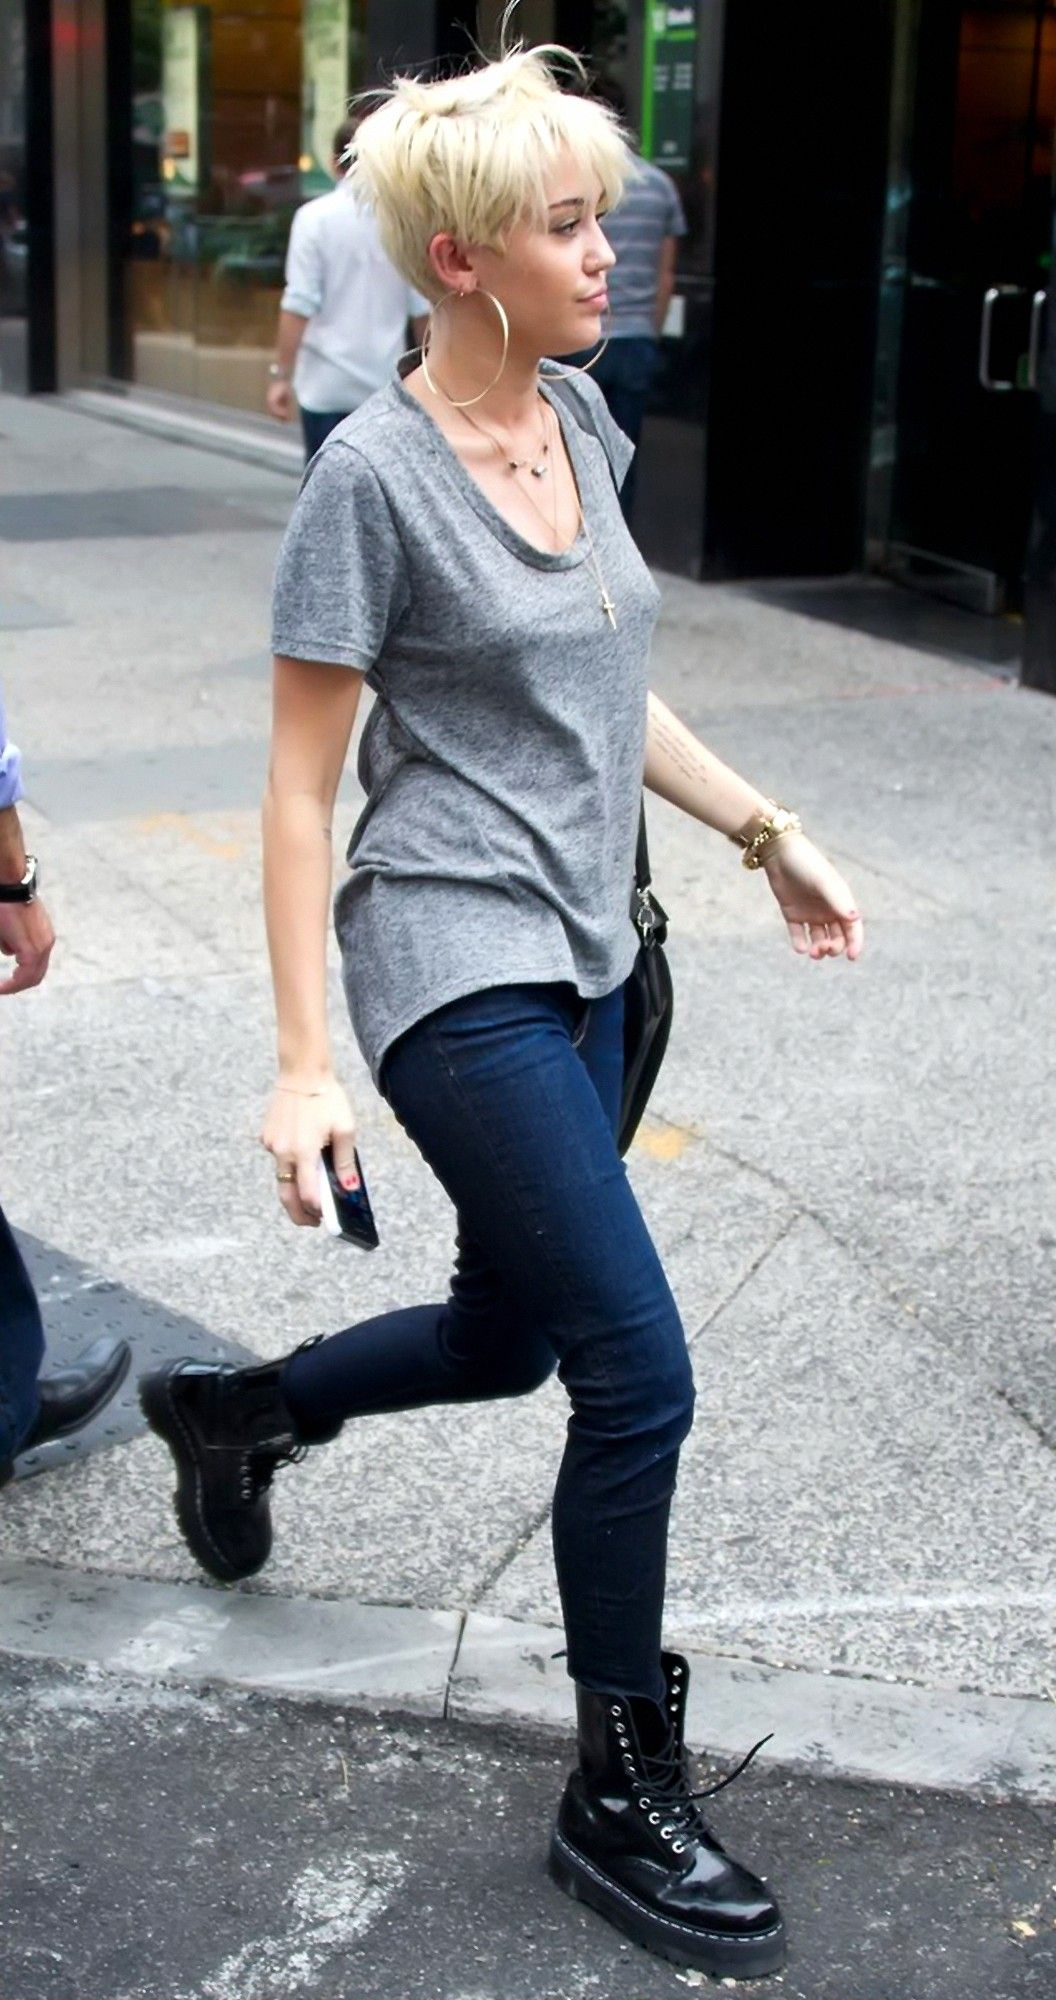 4cdc9153dccc Miley Cyrus with Skinny jeans candids in Philadelphia